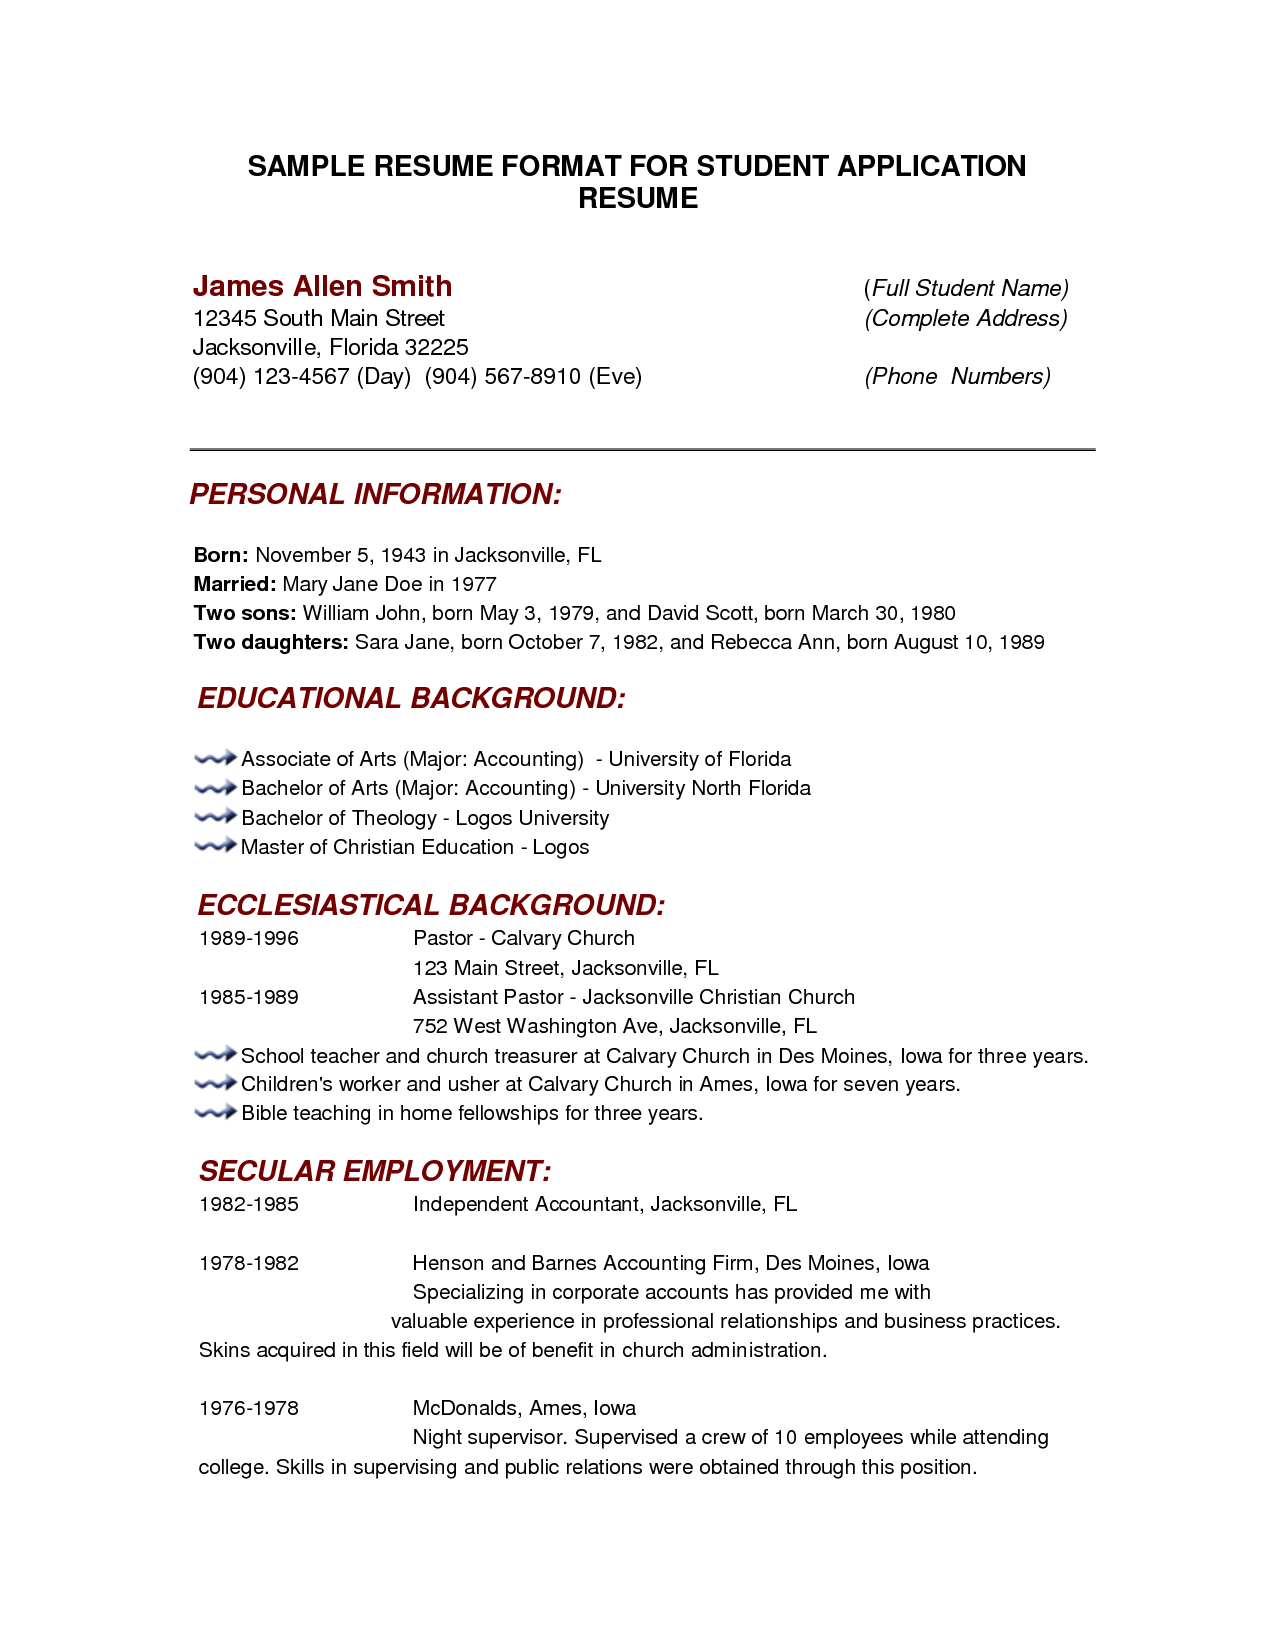 Resume Template For College Students resumecareer – Full Resume Format Download